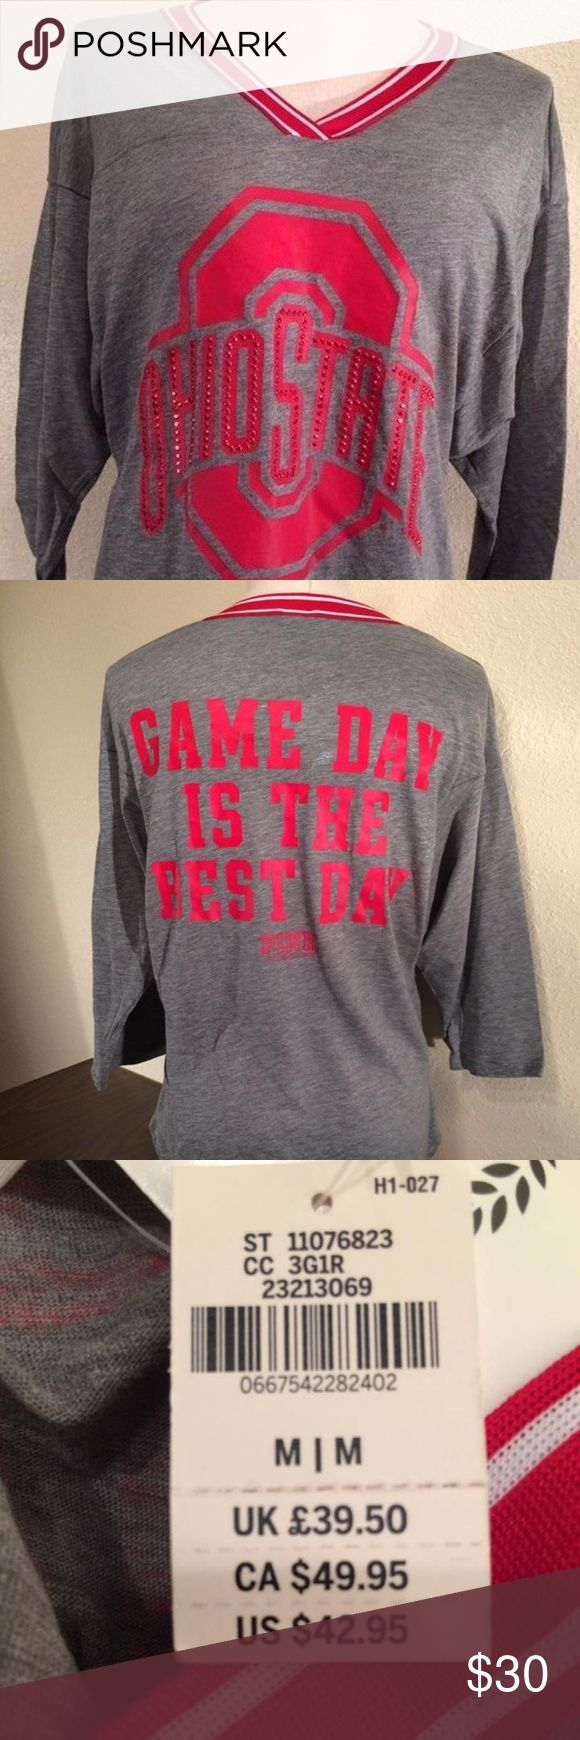 """Victoria's Secret PINK Ohio State Bling T-Shirt Victoria's Secret PINK Ohio State 3/4 Sleeved T-Shirt - NWT Size: Medium Show your Ohio State love in style! It's super comfy with soft cotton blend material, round neck, and 3/4 sleeves. It's finished with bejeweled Ohio State logo the front, red and white trim, and the slogan """"GAME DAY IS THE BEST DAY"""" and PINK logo on the back. 0667542282402 PINK Victoria's Secret Tops Tees - Short Sleeve"""